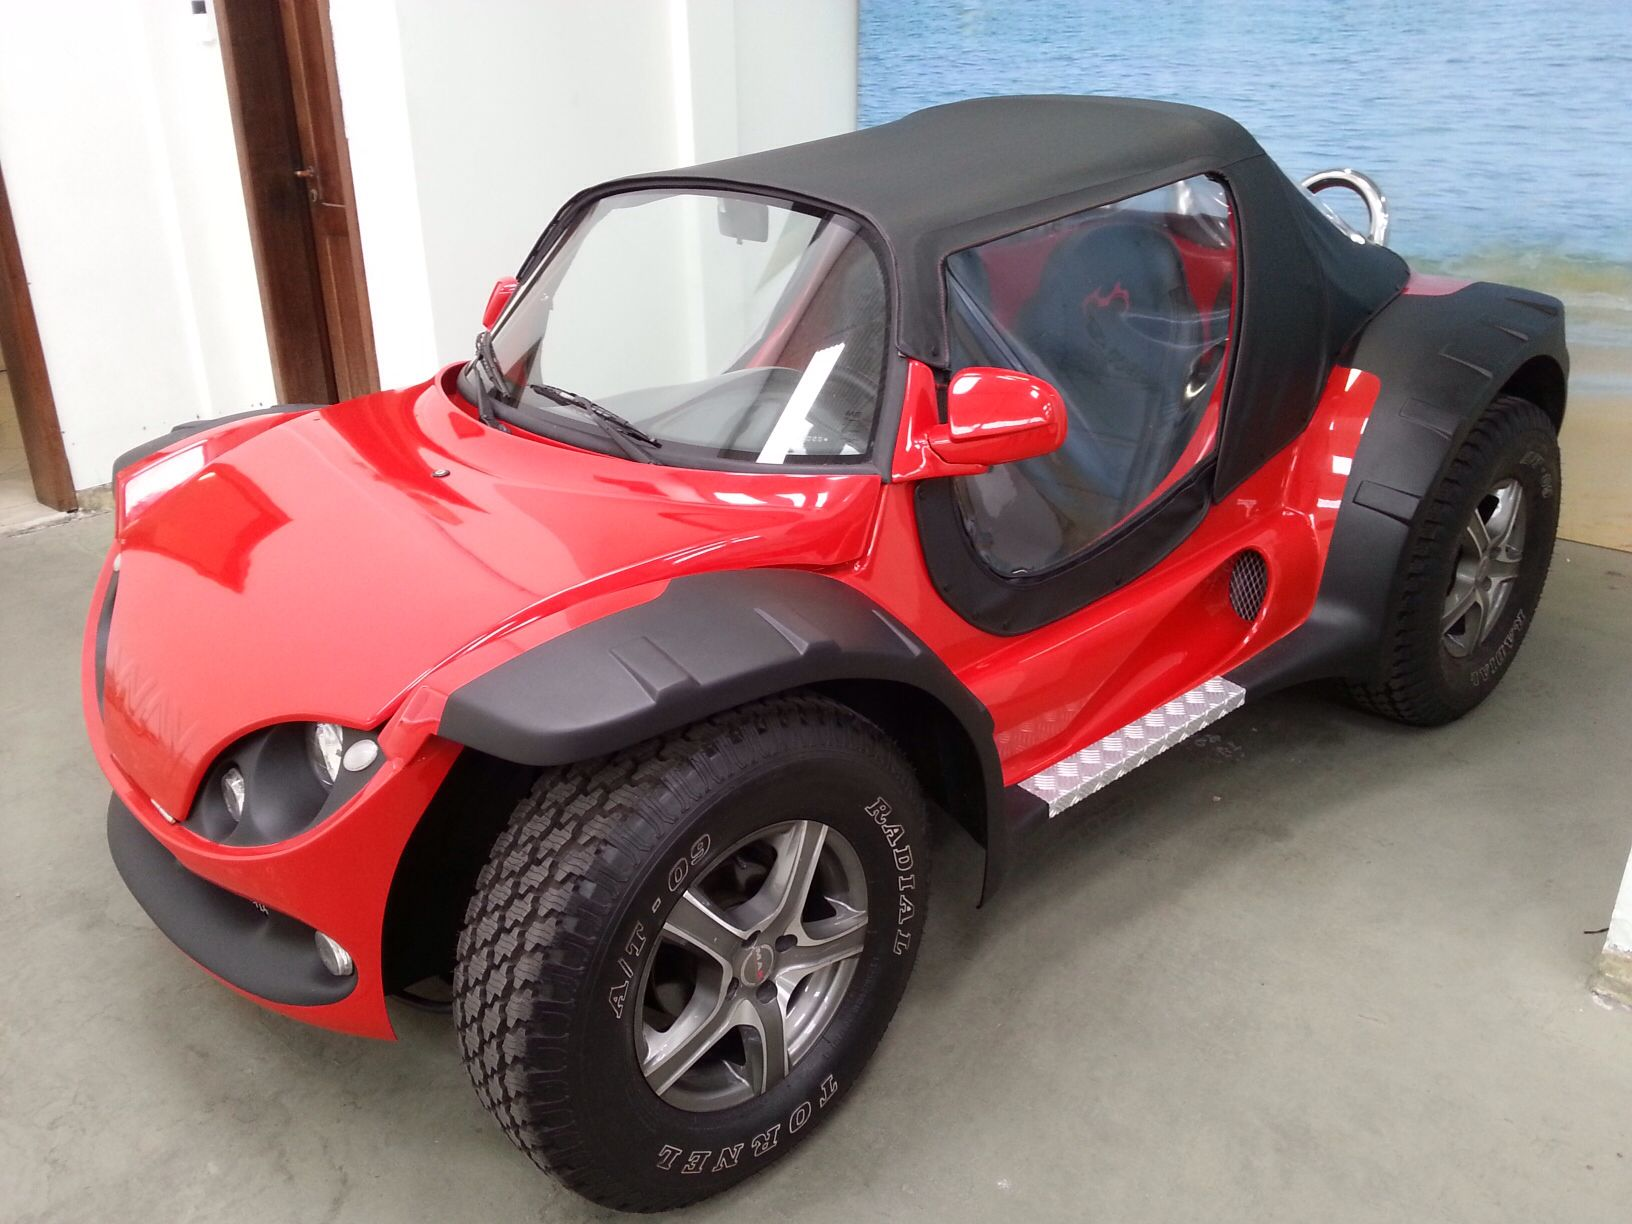 Super BUGGY made in Brazil with VW Golf motor+gearbox